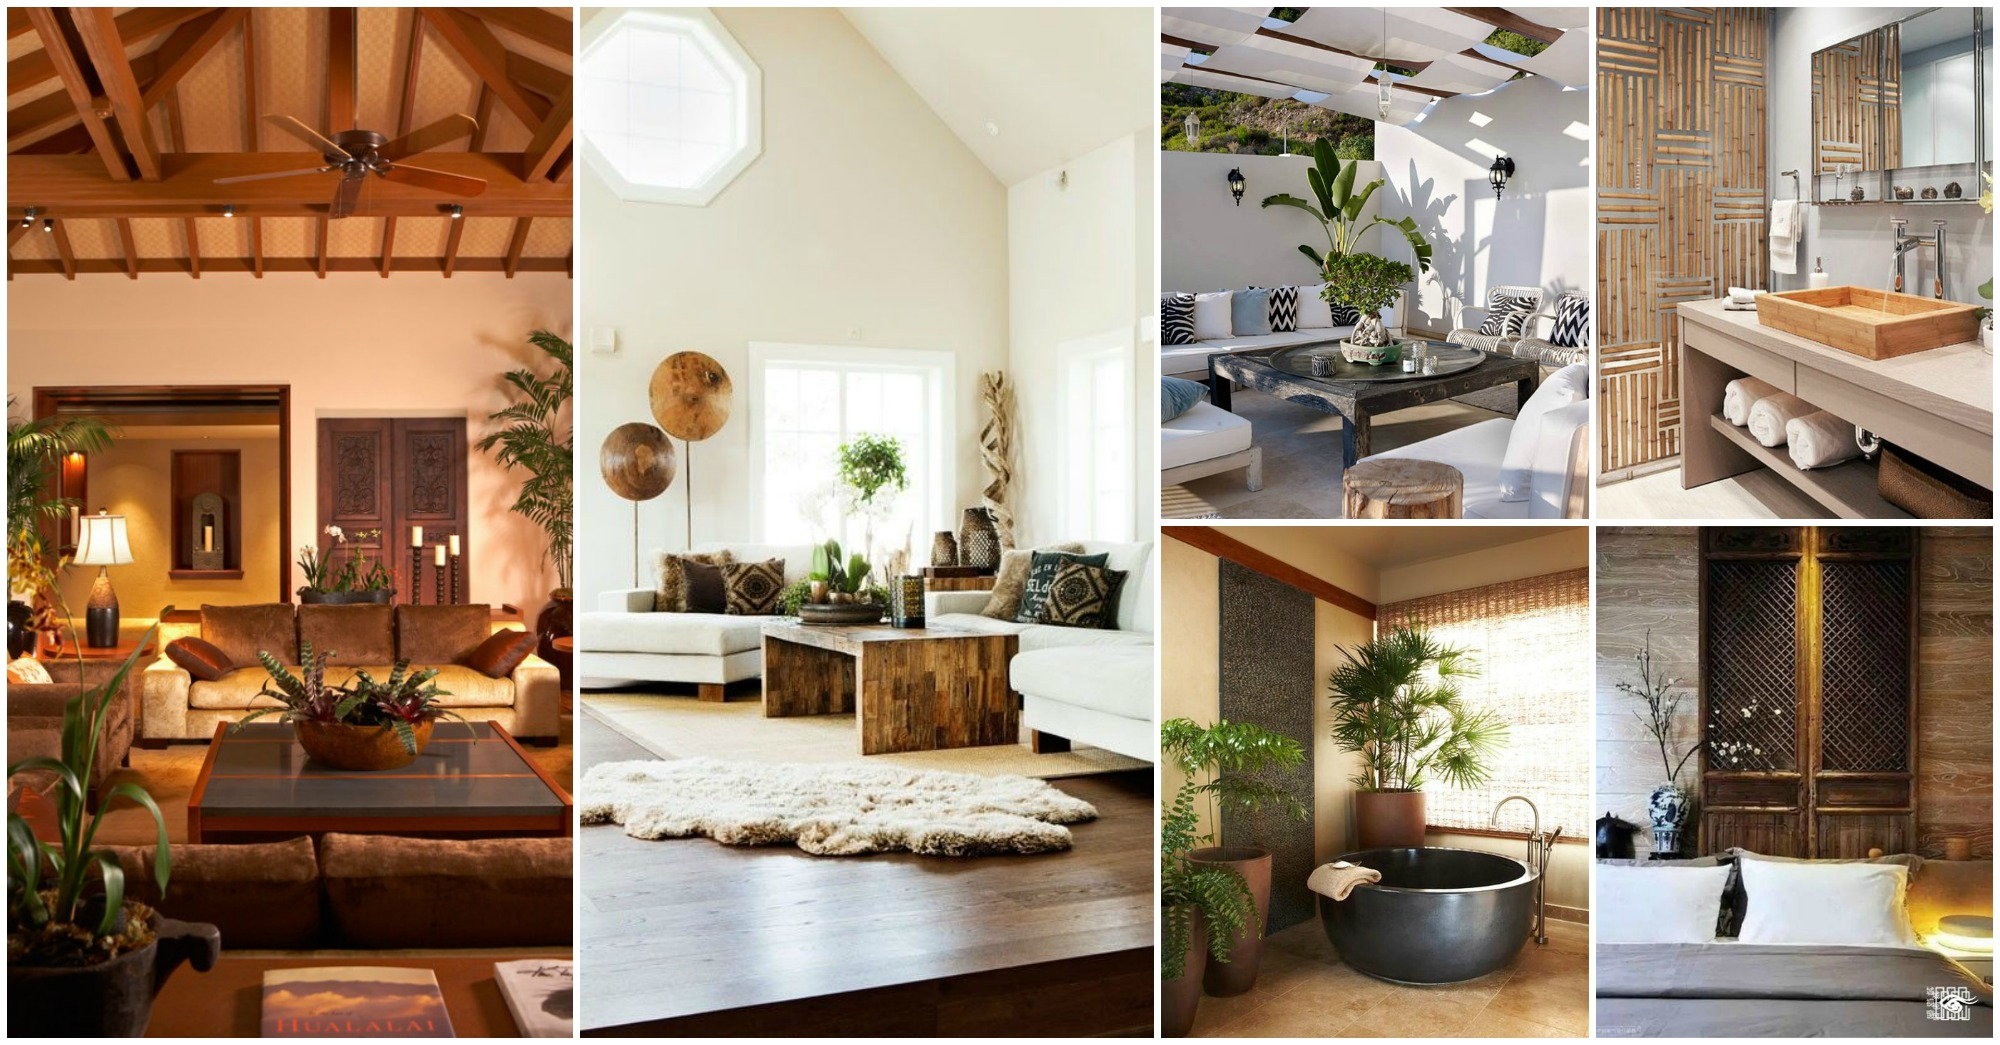 12 impressive modern asian home decor ideas for Interior design items for home